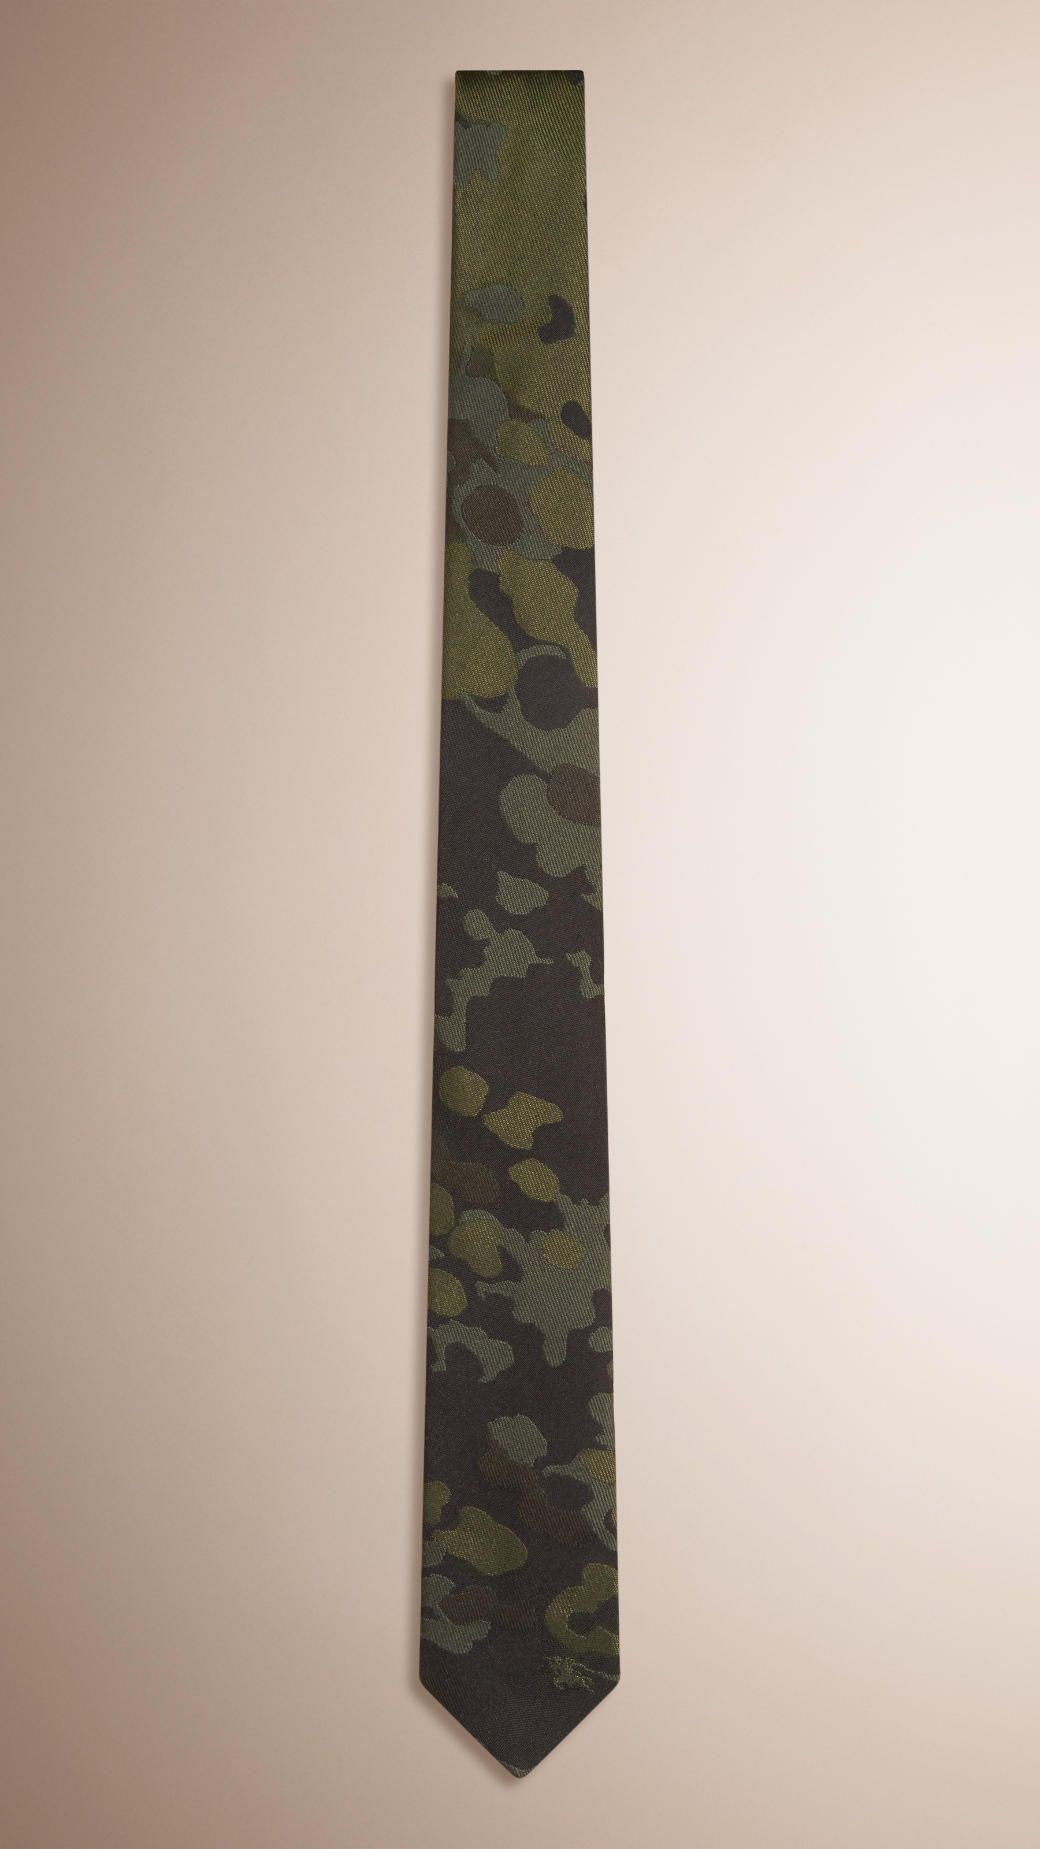 Handmade in England, a jacquard-woven silk tie featuring a camouflage design.